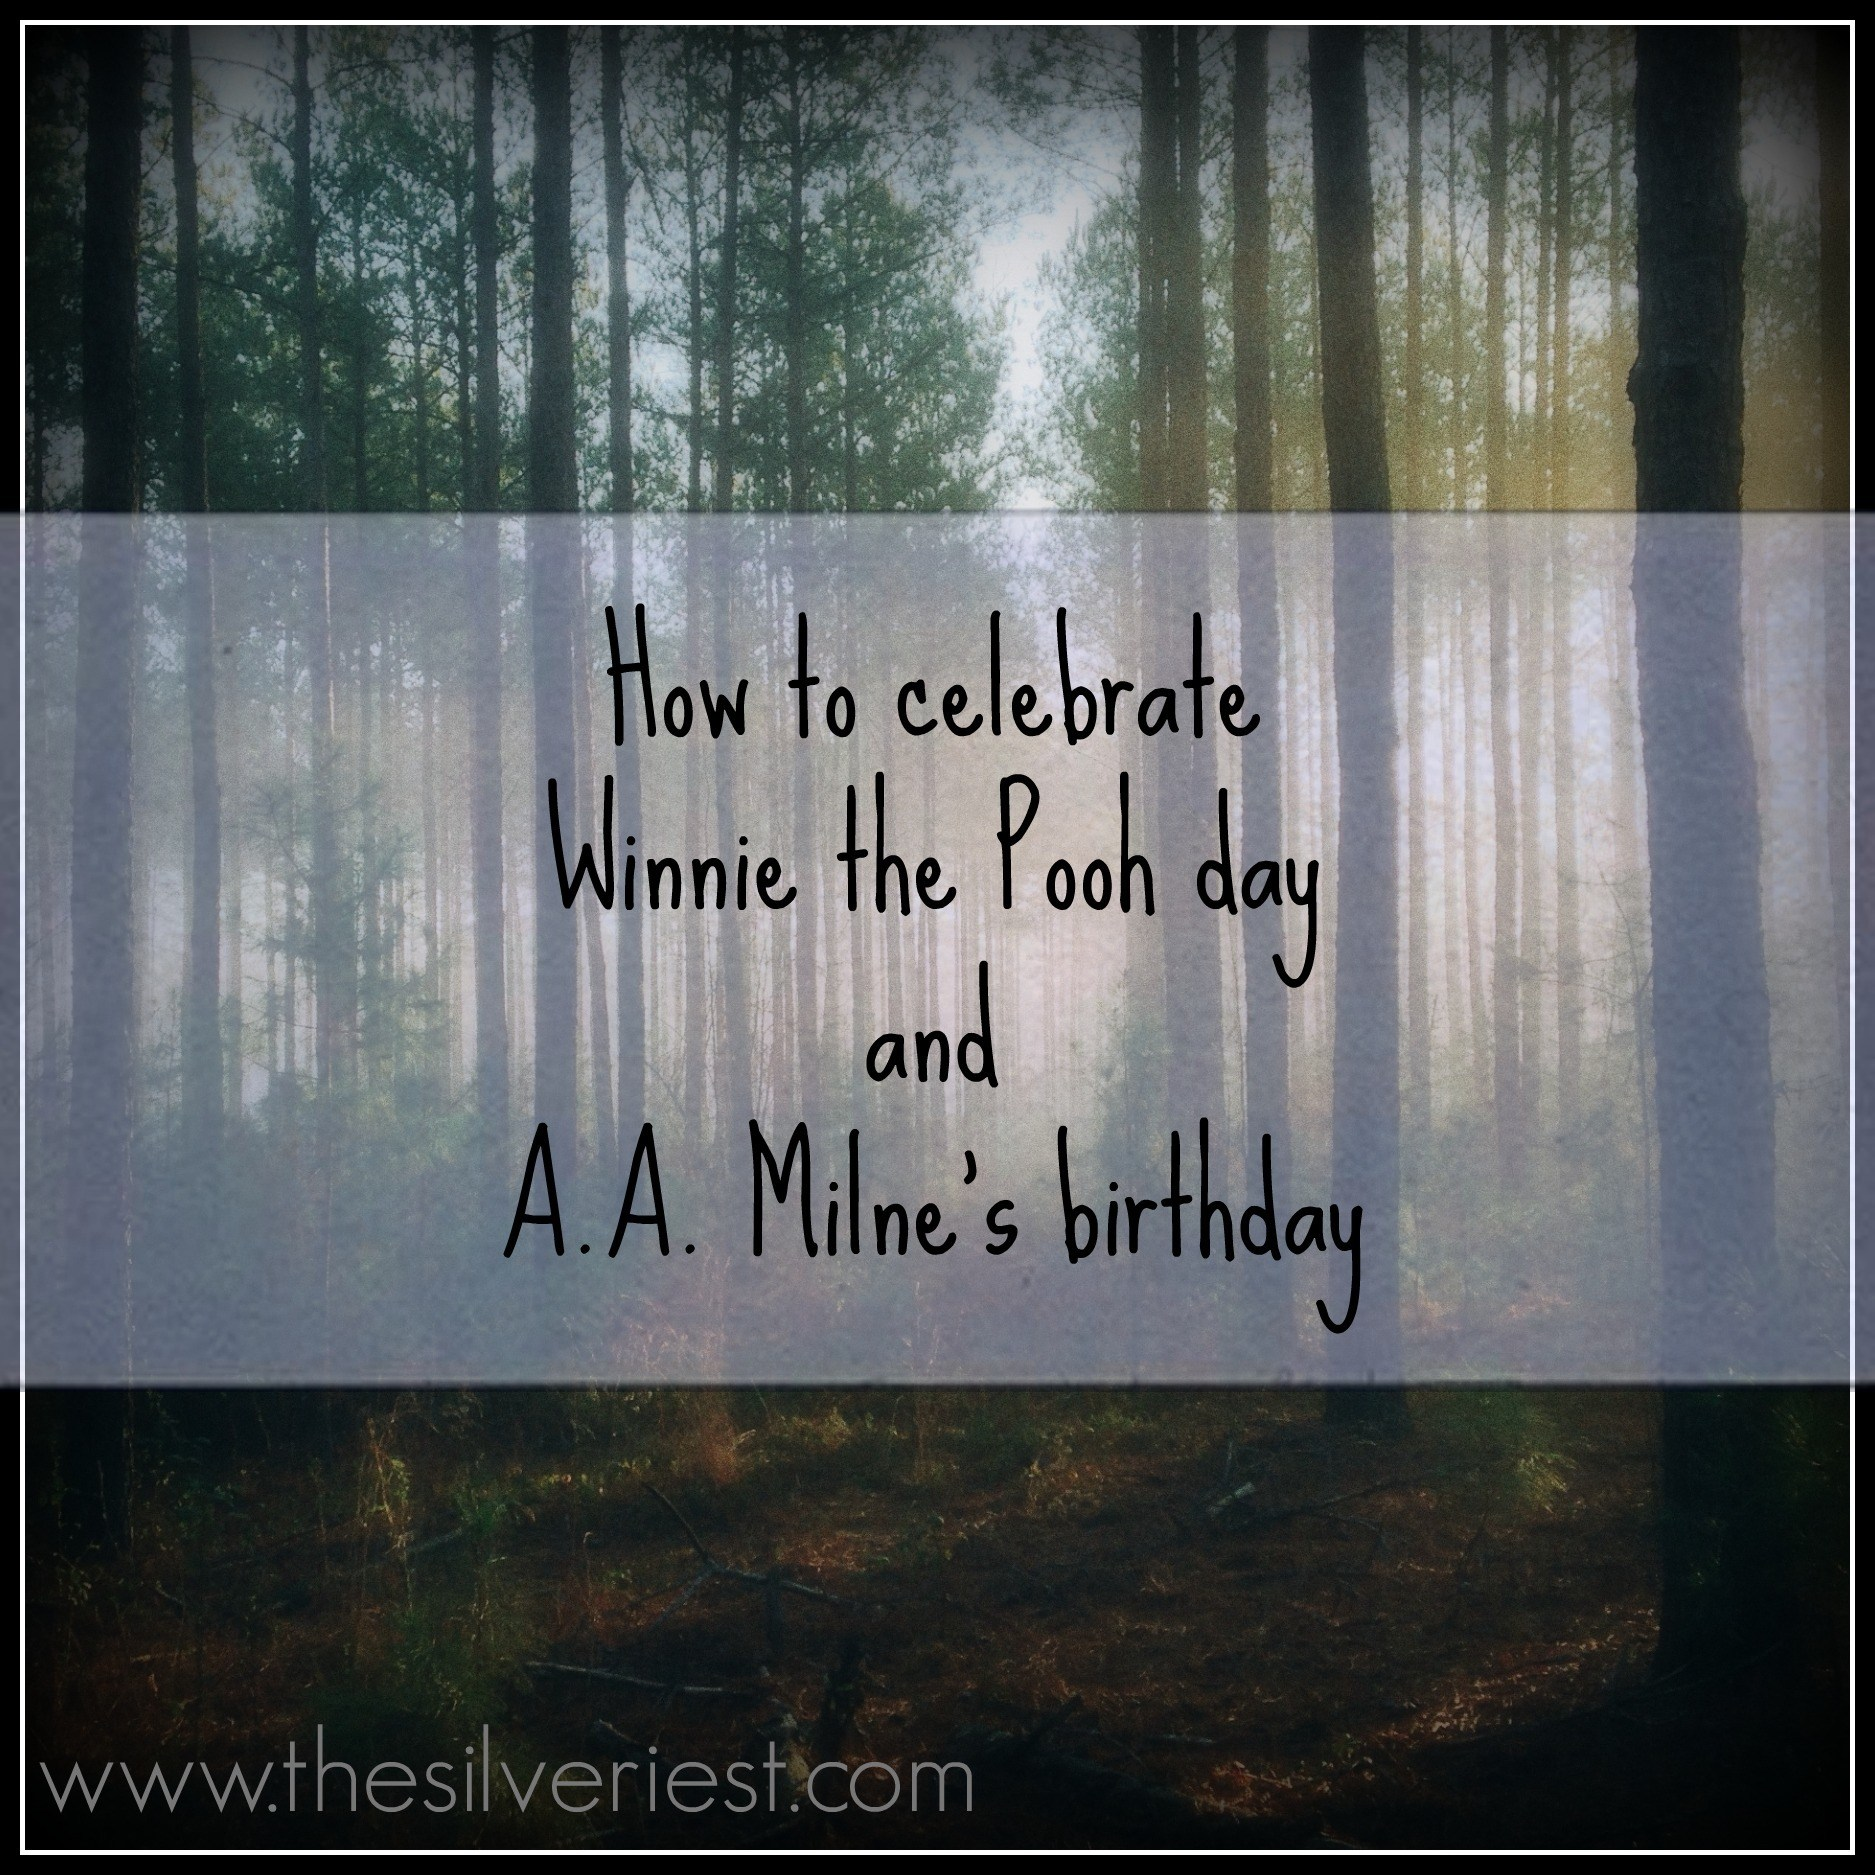 These delightful stories should be read over and over! Here's how we celebrate Winnie the Pooh day and A.A. Milne's birthday in a simple and meaningful way. www.thesilveriest.com